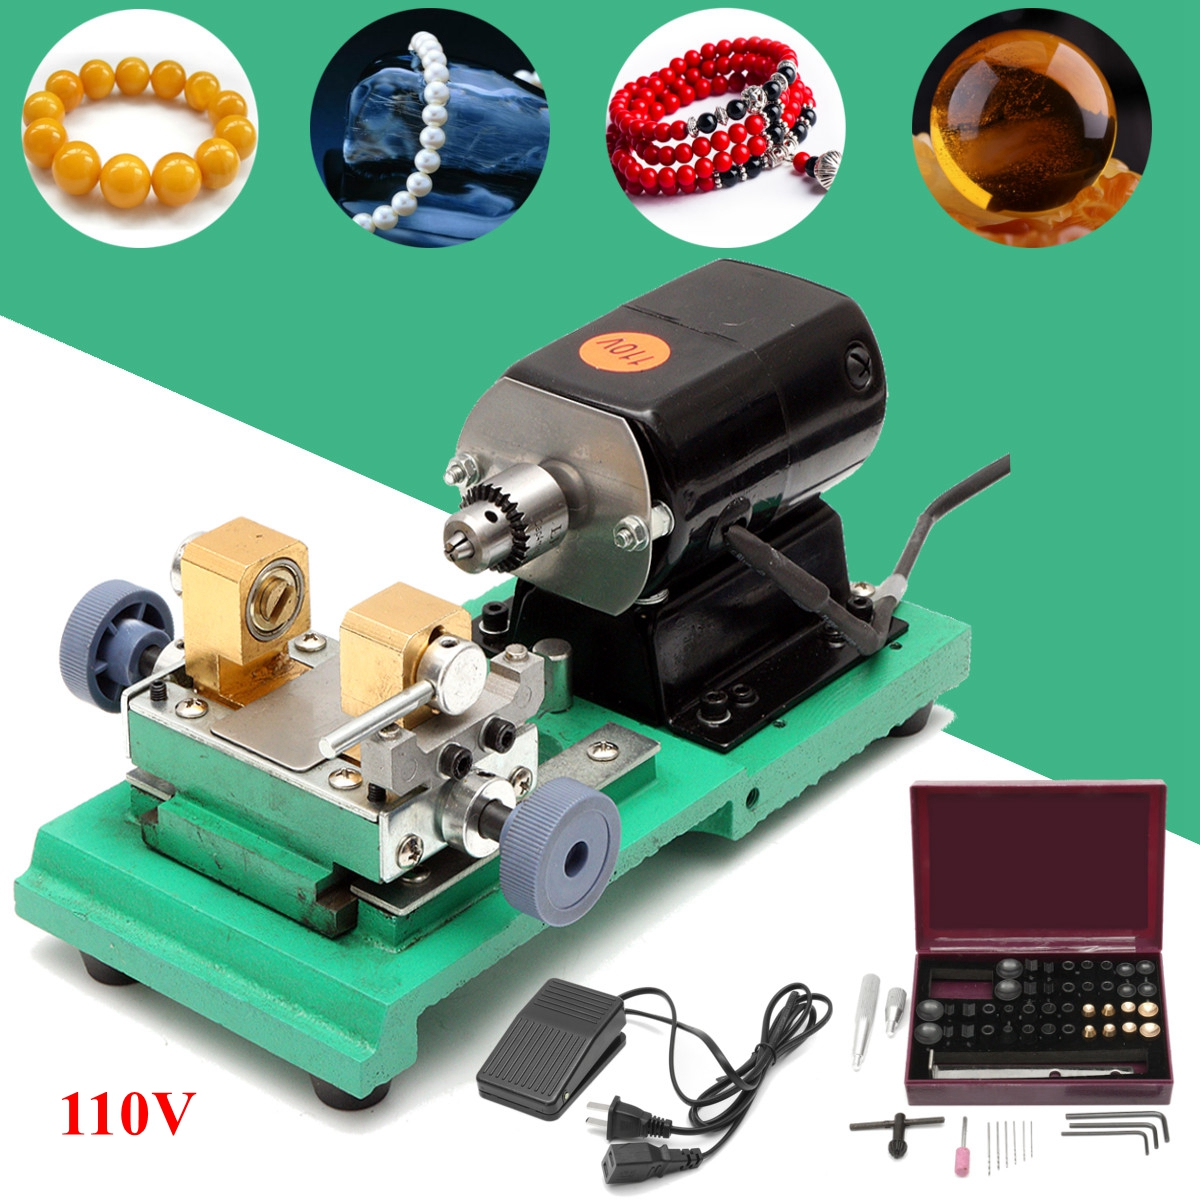 110V 240W Pearl Drilling Holing Machine Driller Jewelry Punch Engraving Engraver Machine Tools Full Set